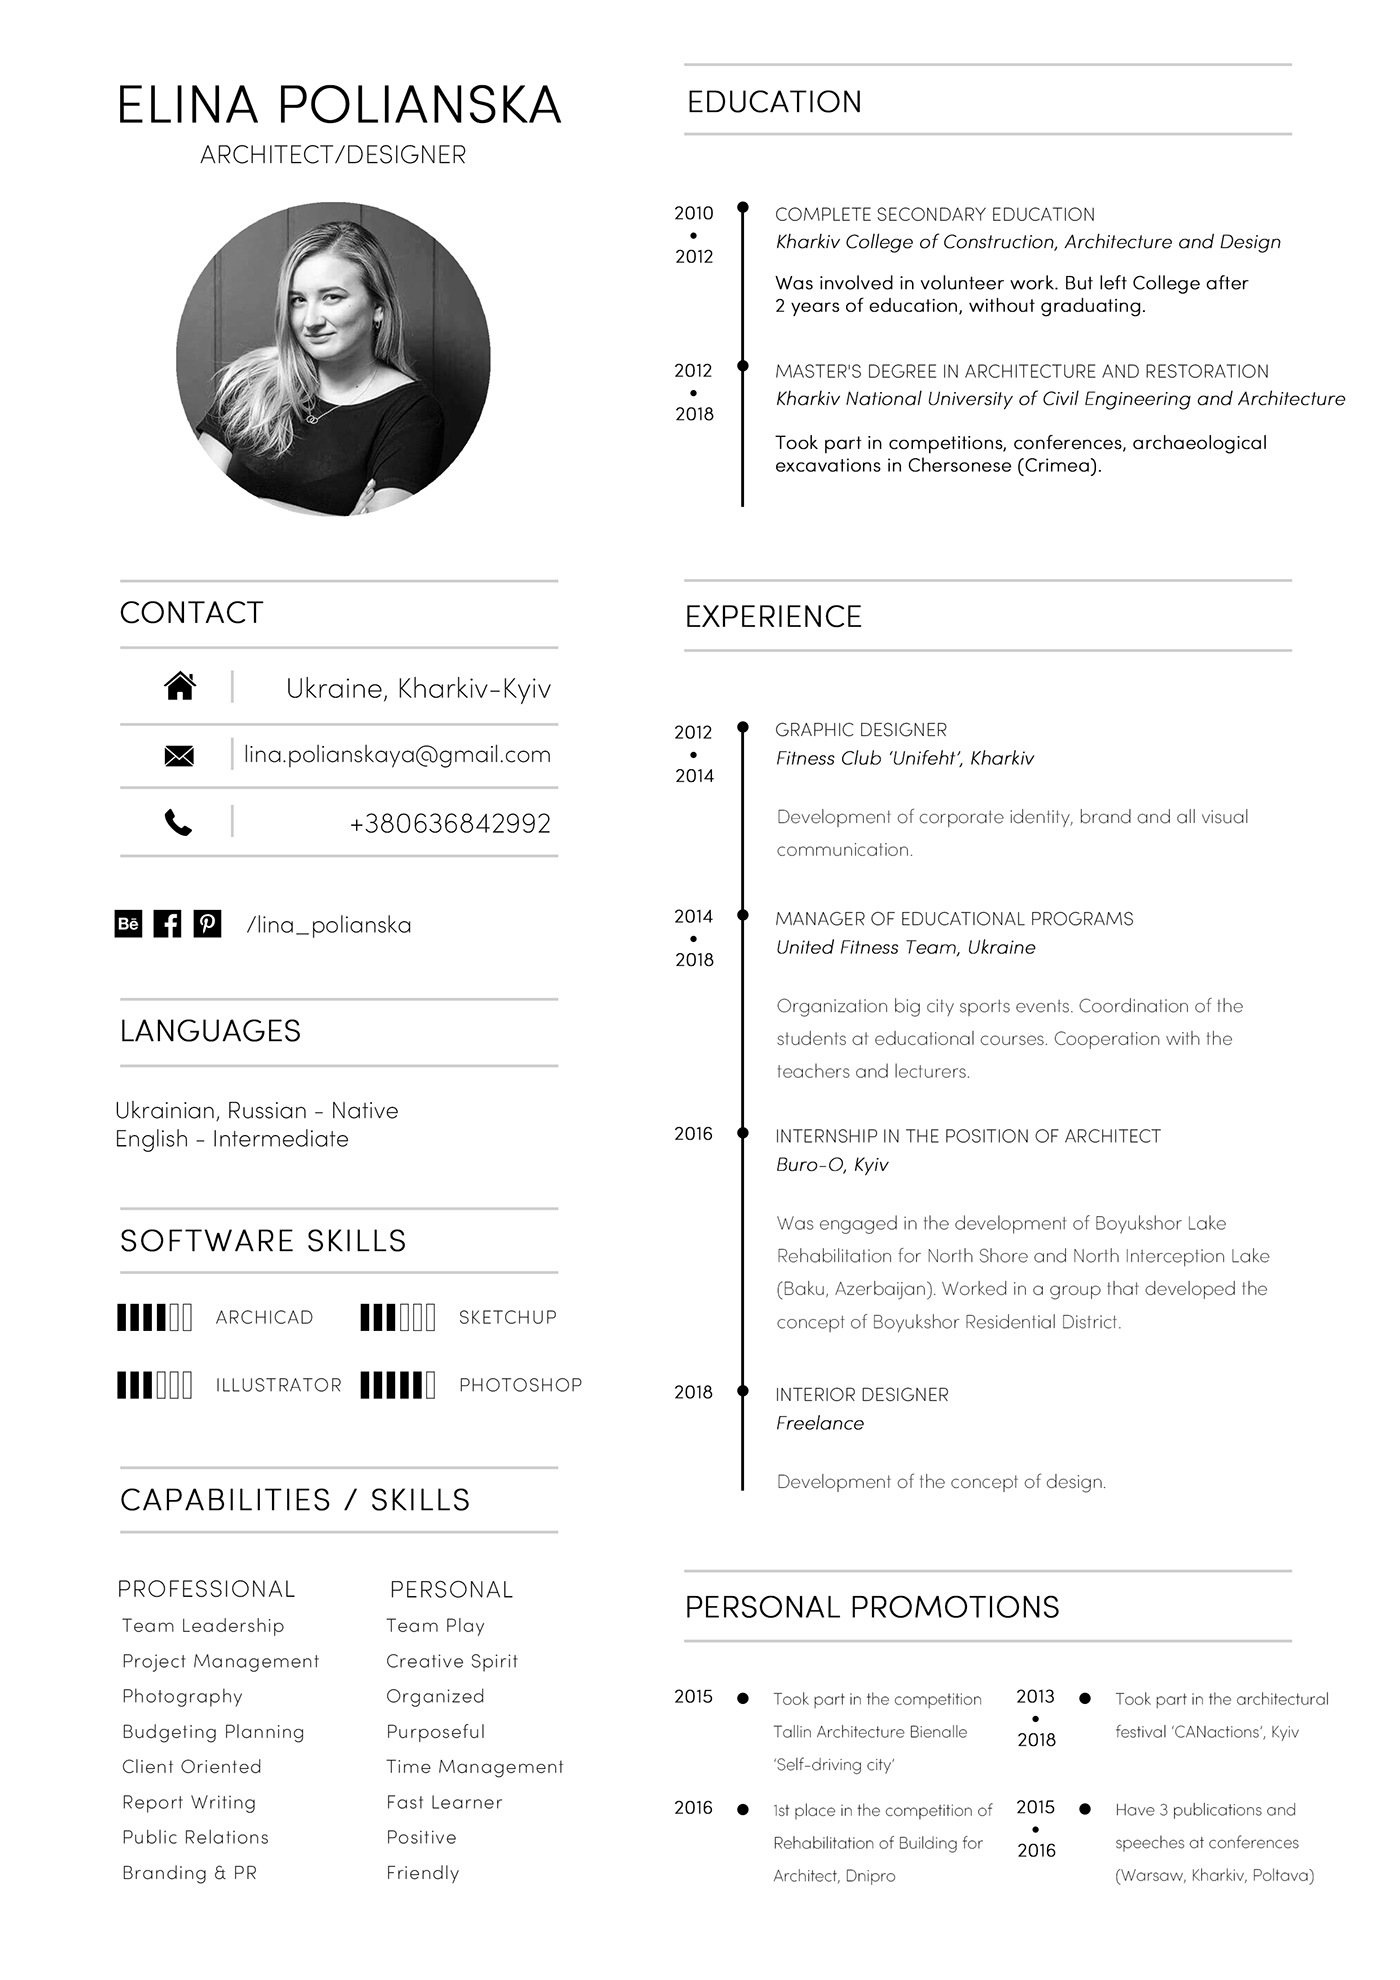 Resume Architecture Resume Portfolio Cv Architect Cv Informations About Resume Pin You Can Easily Us Architecture Resume Architect Resume Portfolio Resume